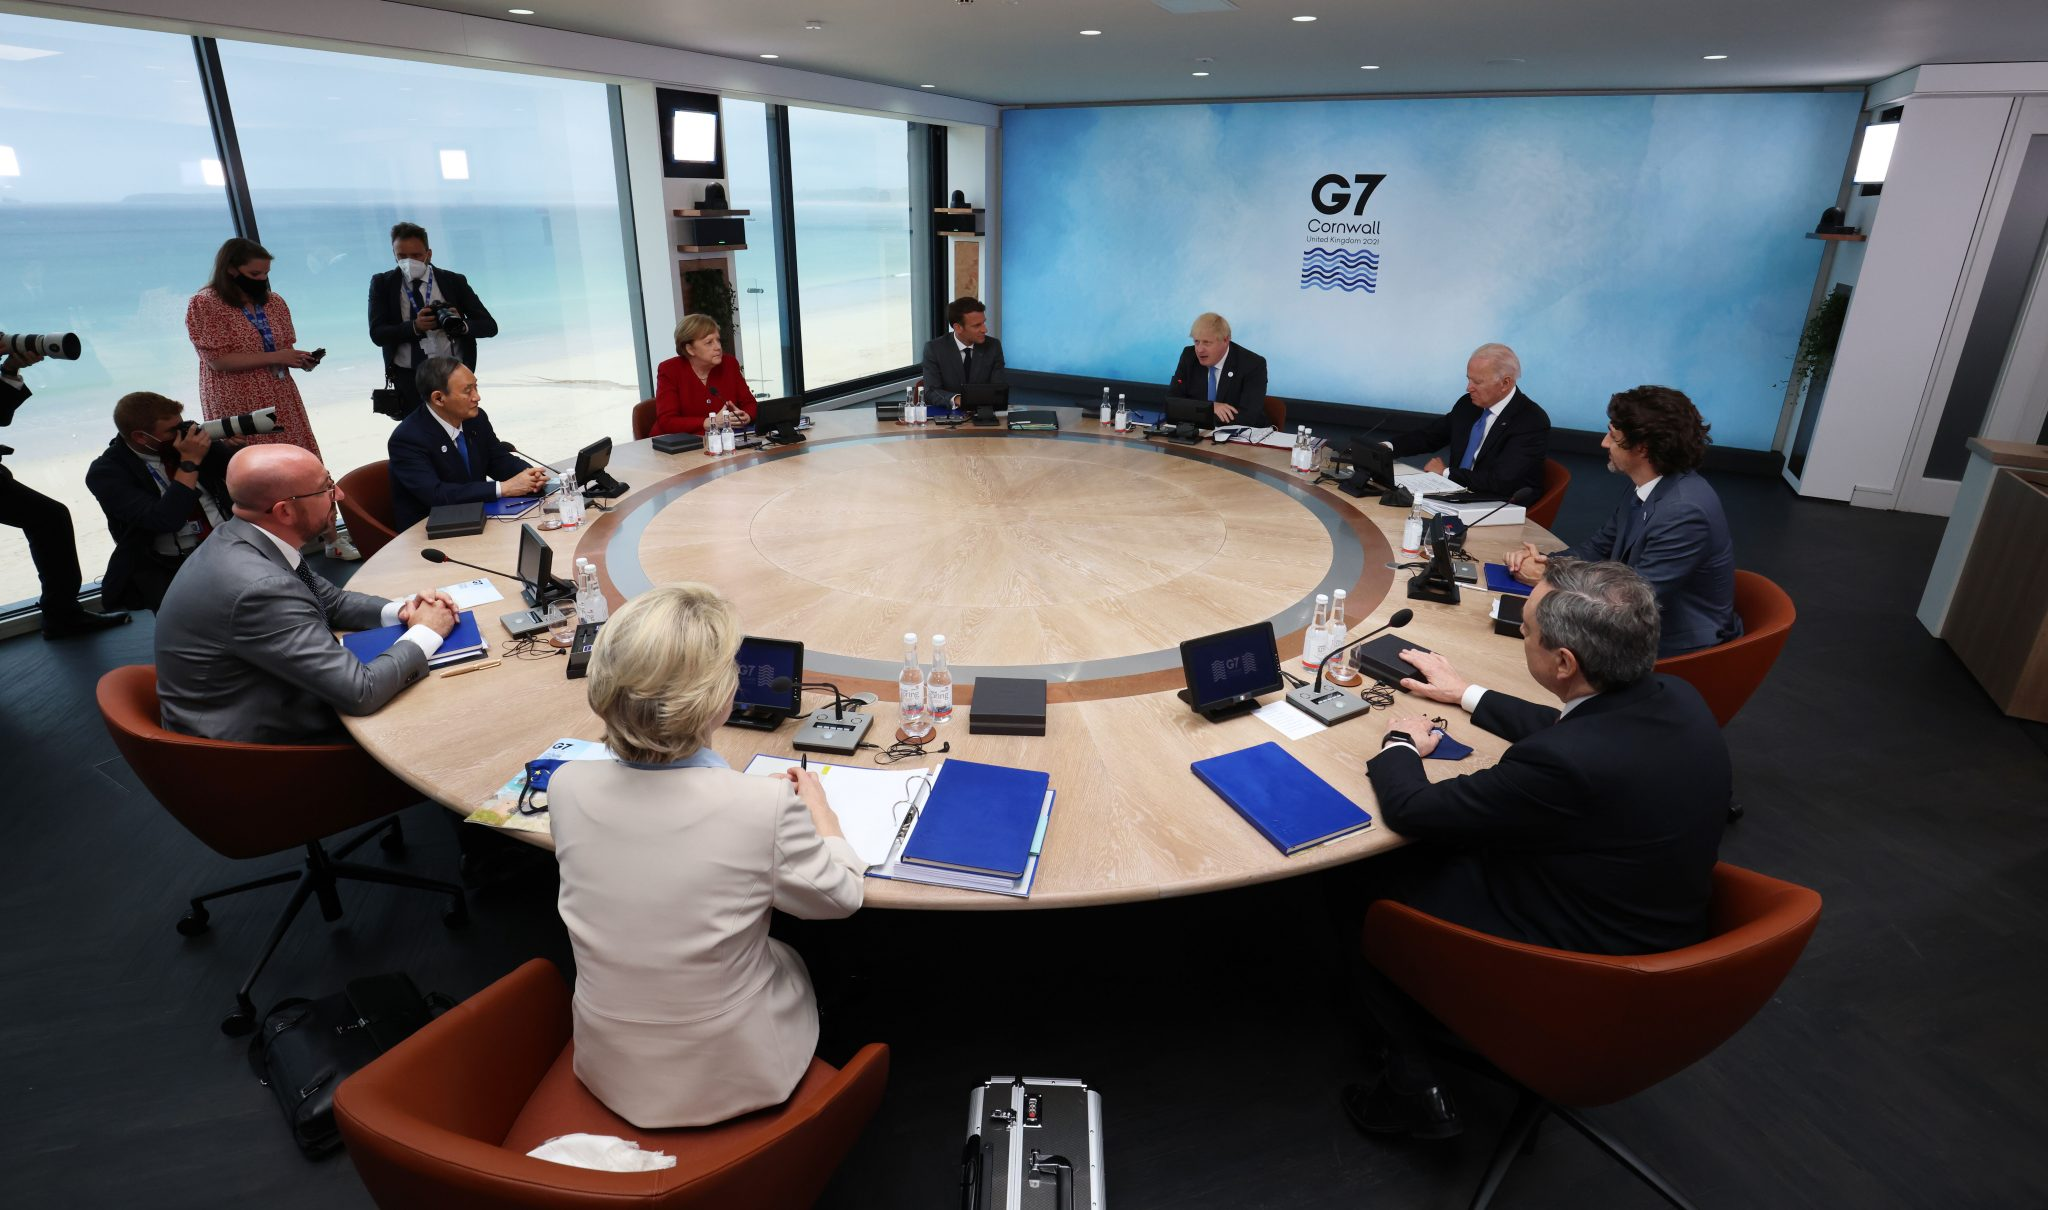 Can the G7 really build back a better world?